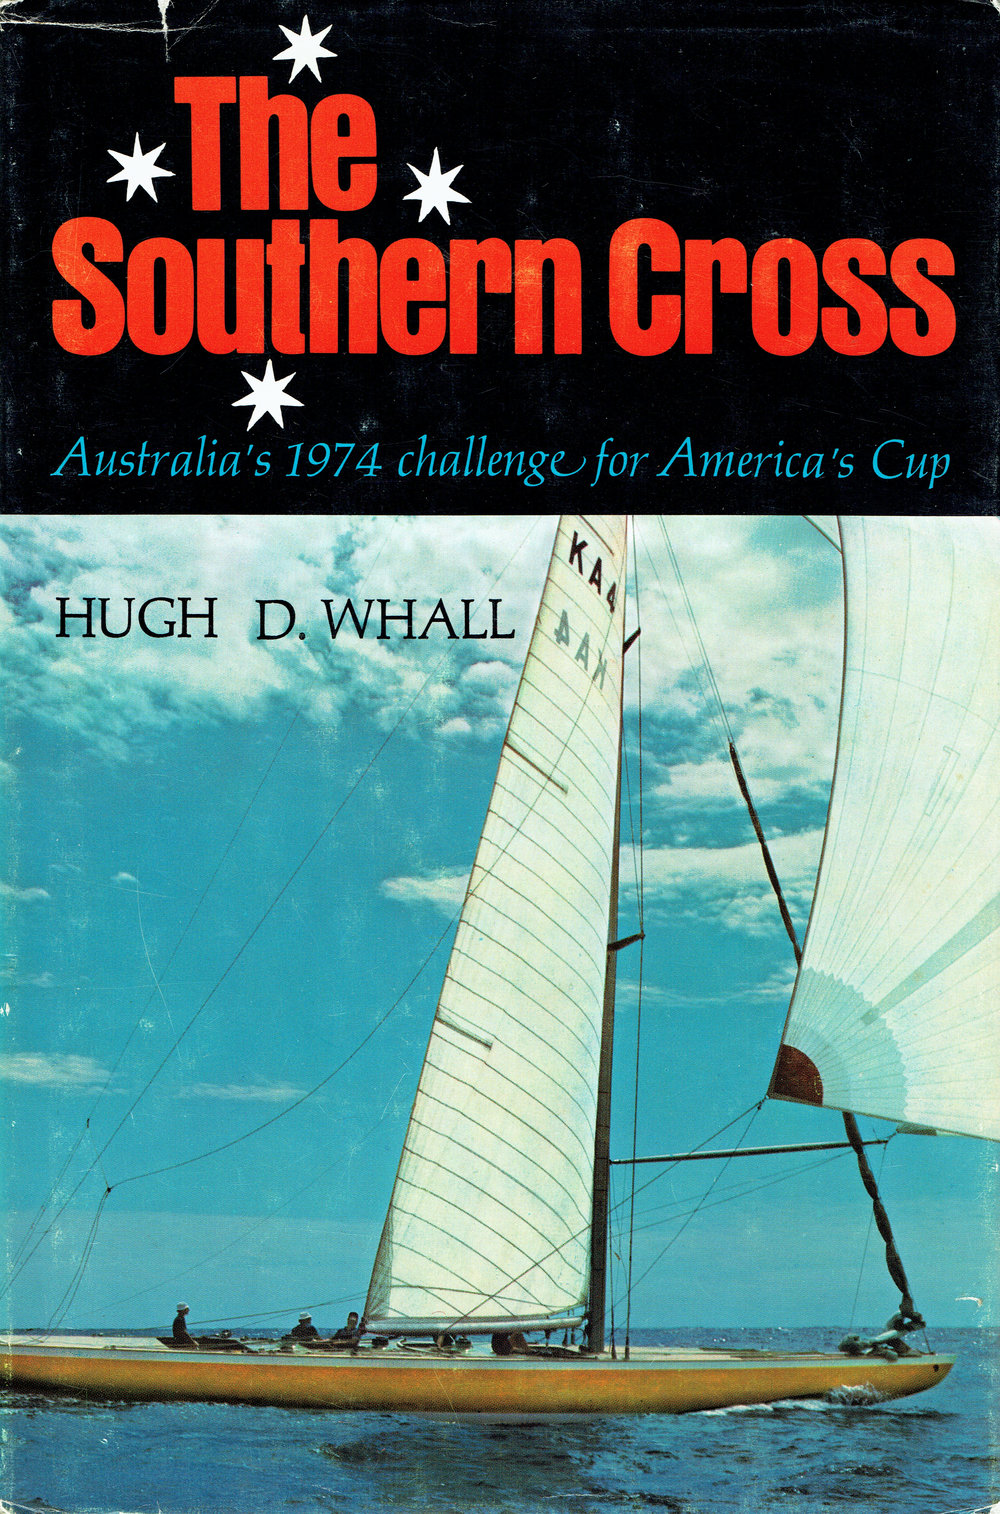 The Southern Cross : Australia's 1974 challenge for America's Cup Hugh D. Whall ; illustrations by Melbourne Smith.